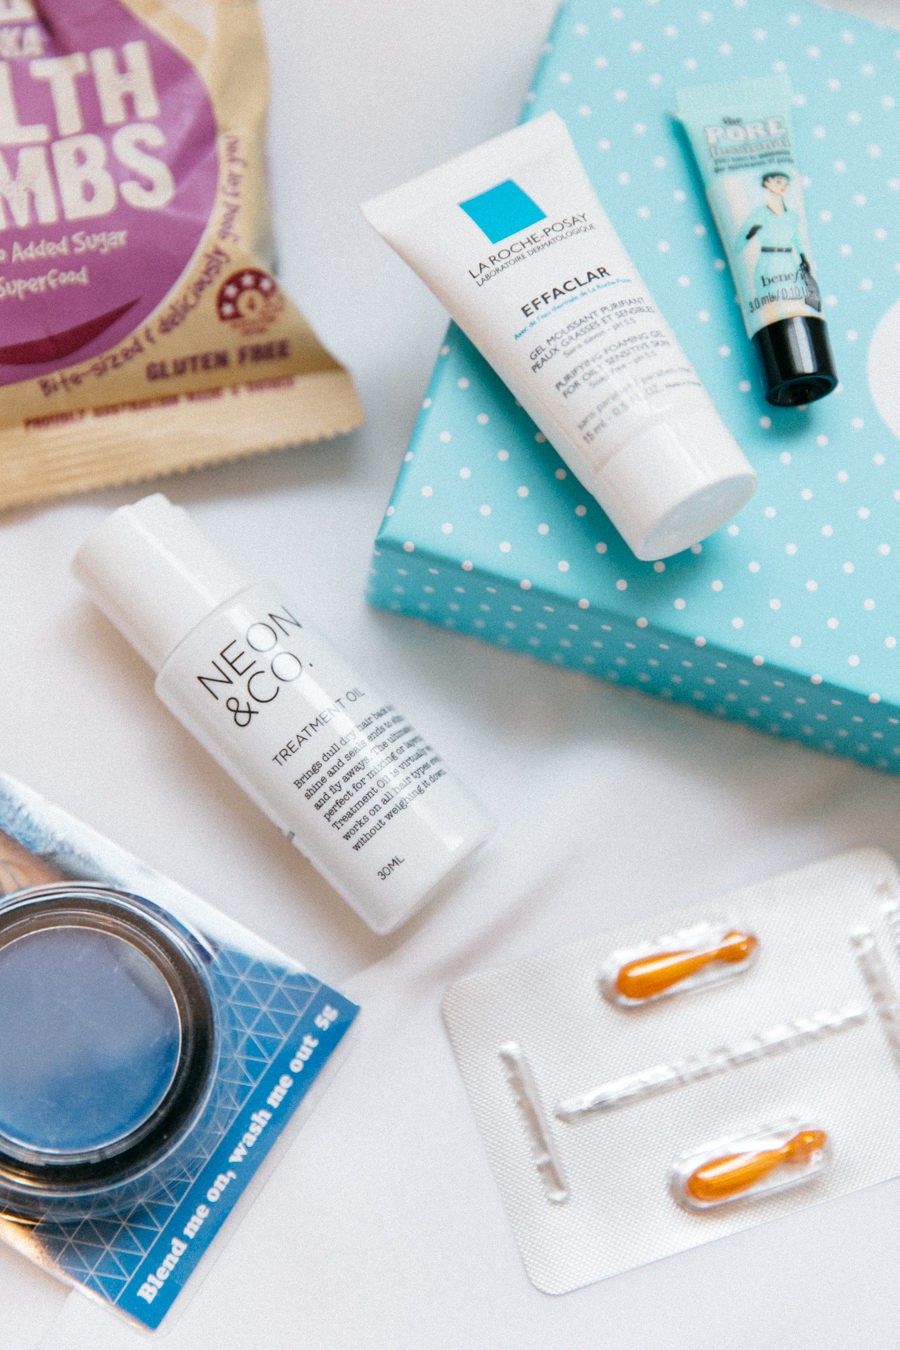 Bellabox for March 2016.